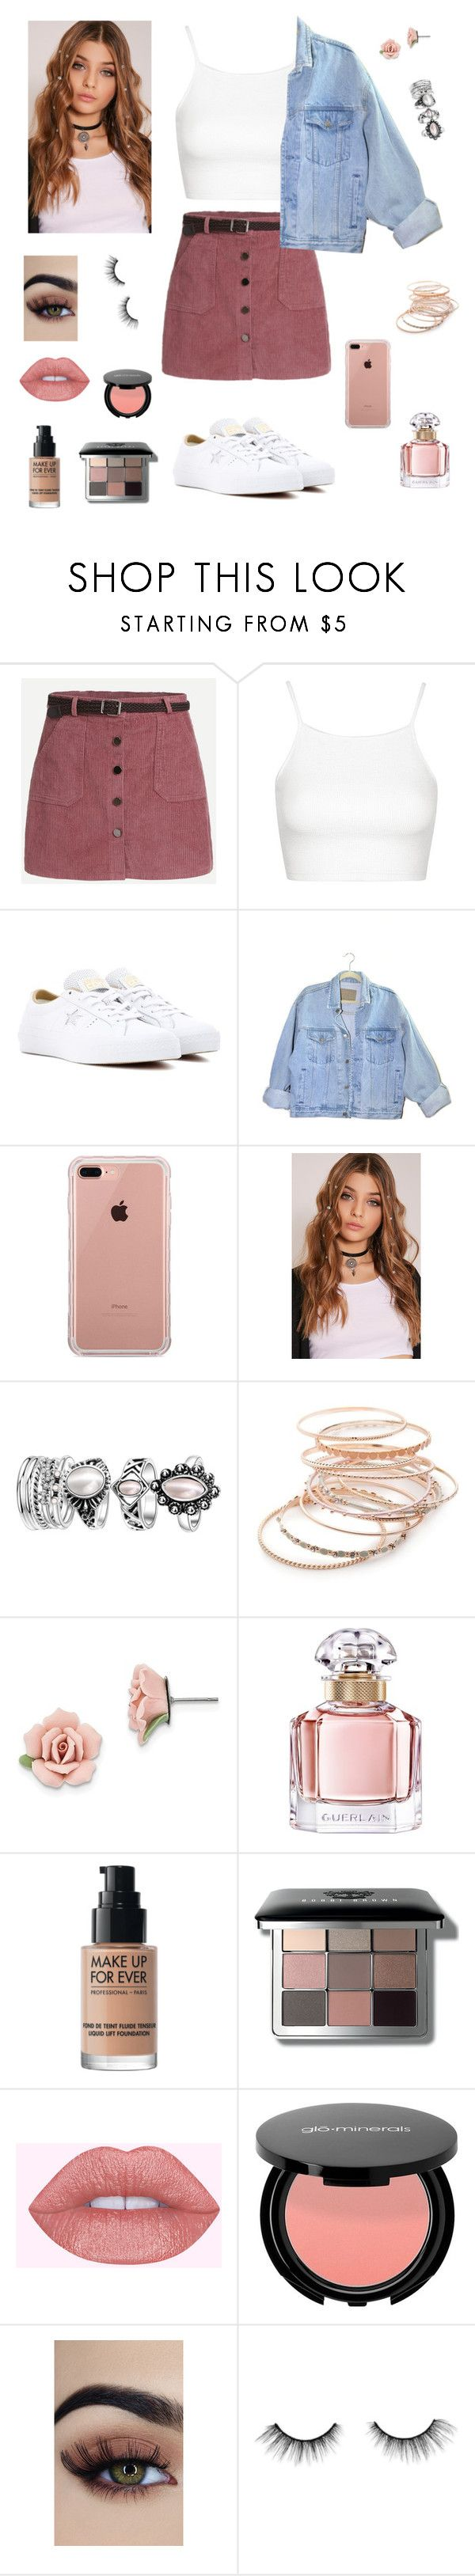 """"""""""" by rochiilucena8 ❤ liked on Polyvore featuring Topshop, Converse, Belkin, Red Camel, 1928, Guerlain, MAKE UP FOR EVER, Bobbi Brown Cosmetics and tarte"""